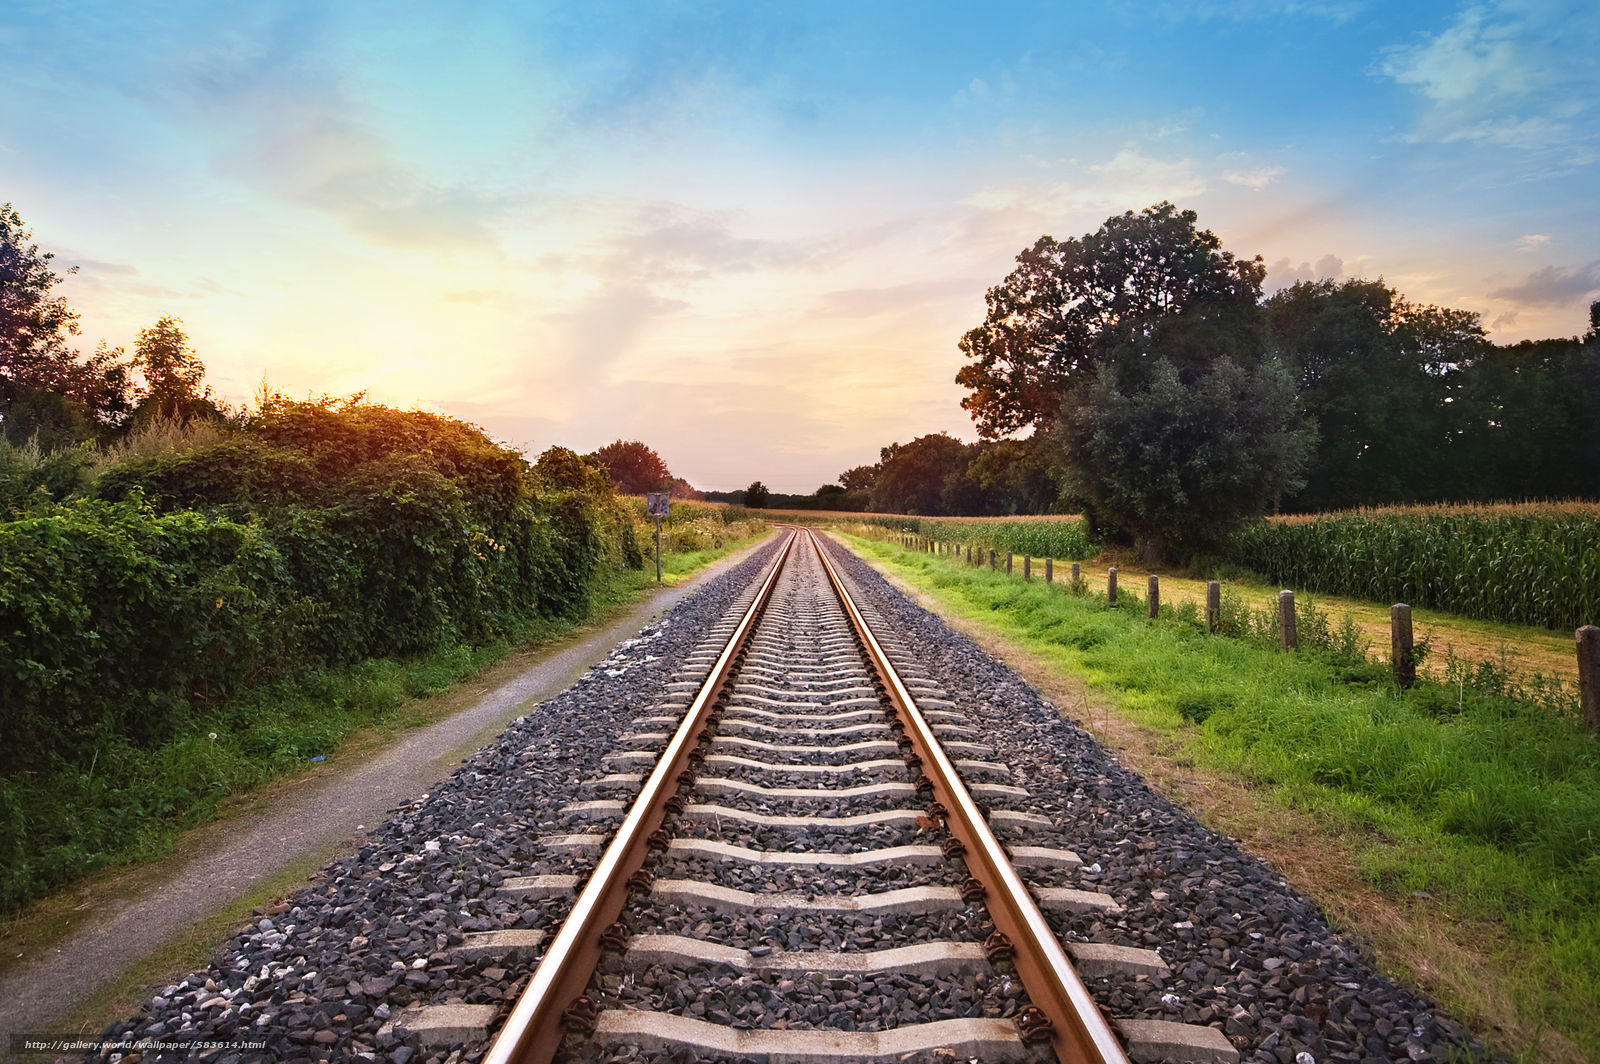 hispanic singles in rail road flat Deborah kelly is on facebook join facebook to connect with deborah kelly and others you may know facebook gives people the power to share and makes the.